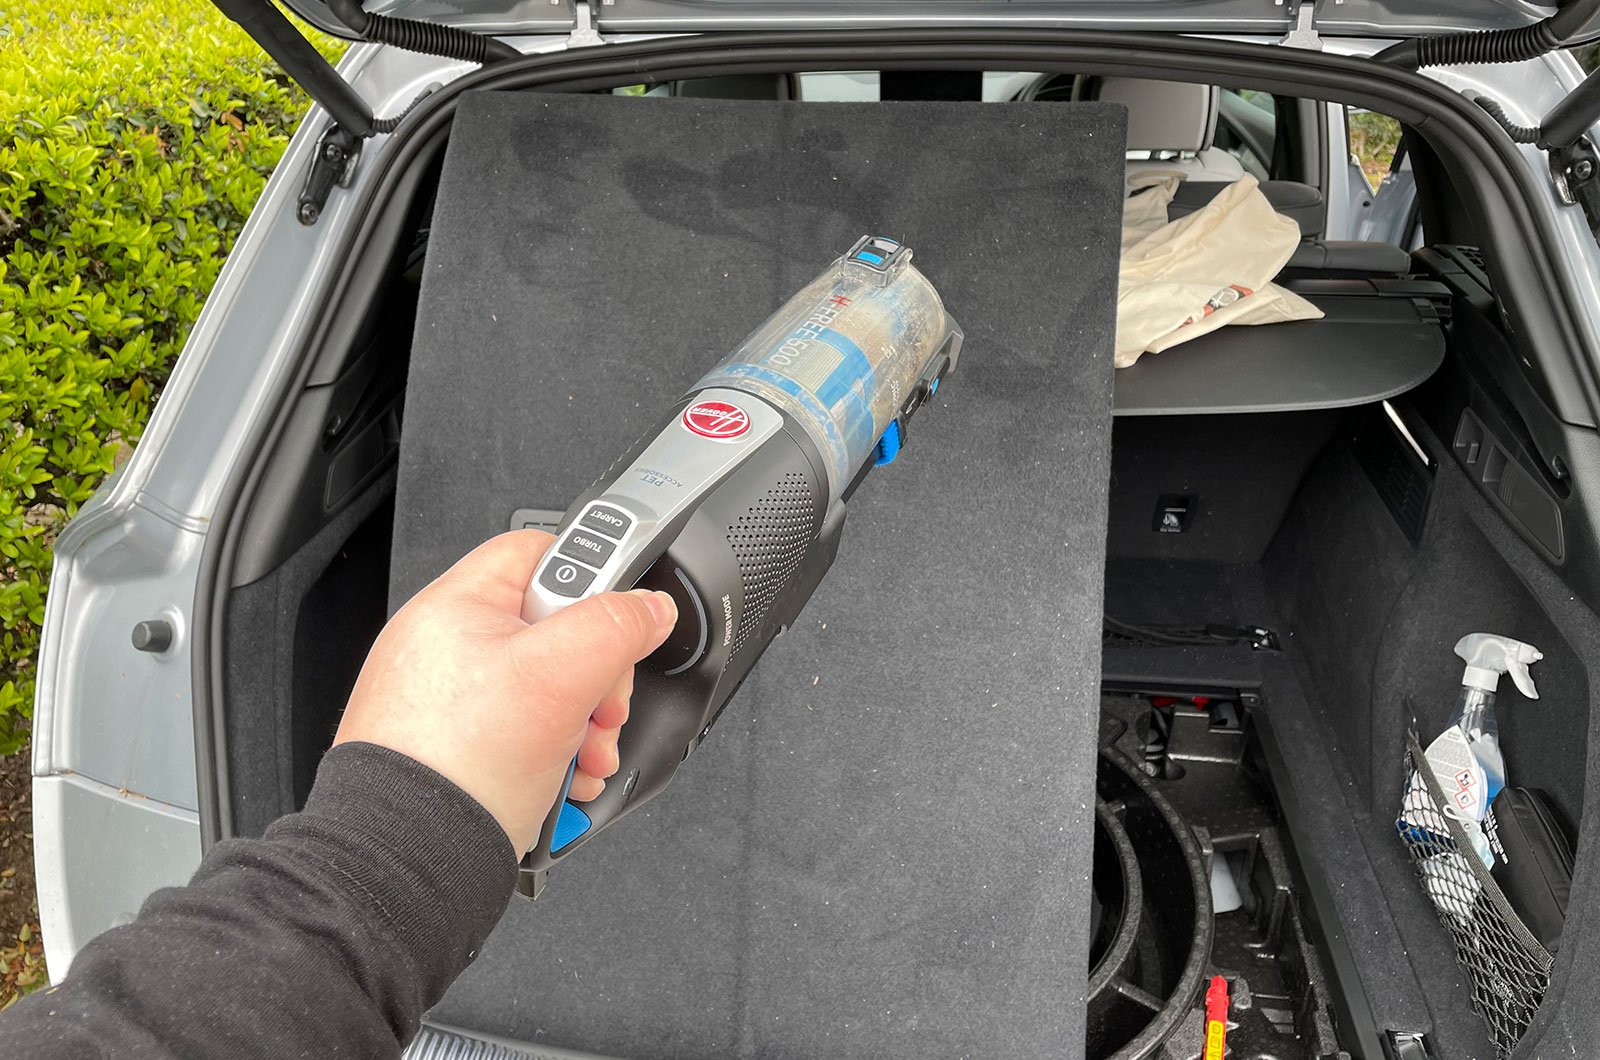 Audi Q5 boot being cleaned